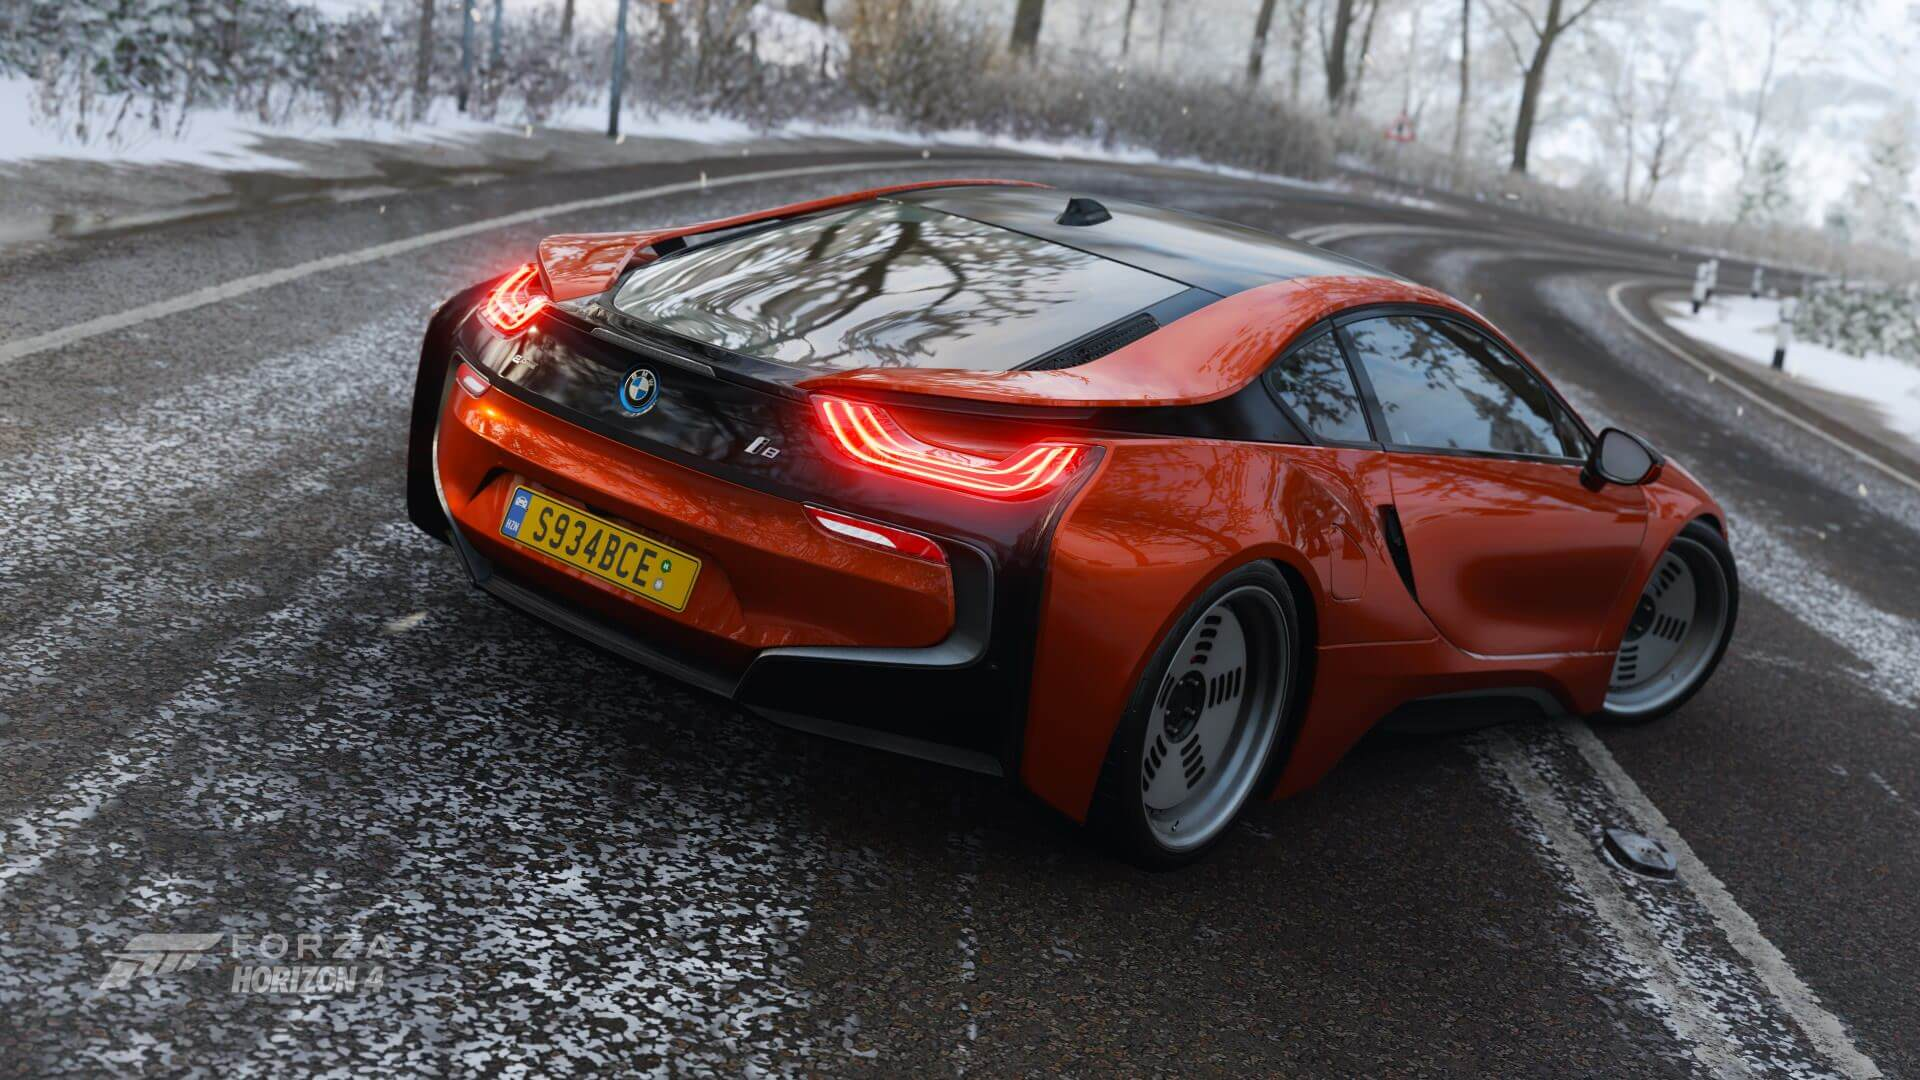 Forza Horizon 4 Update 4 Now Available: New Cars, Big Photo